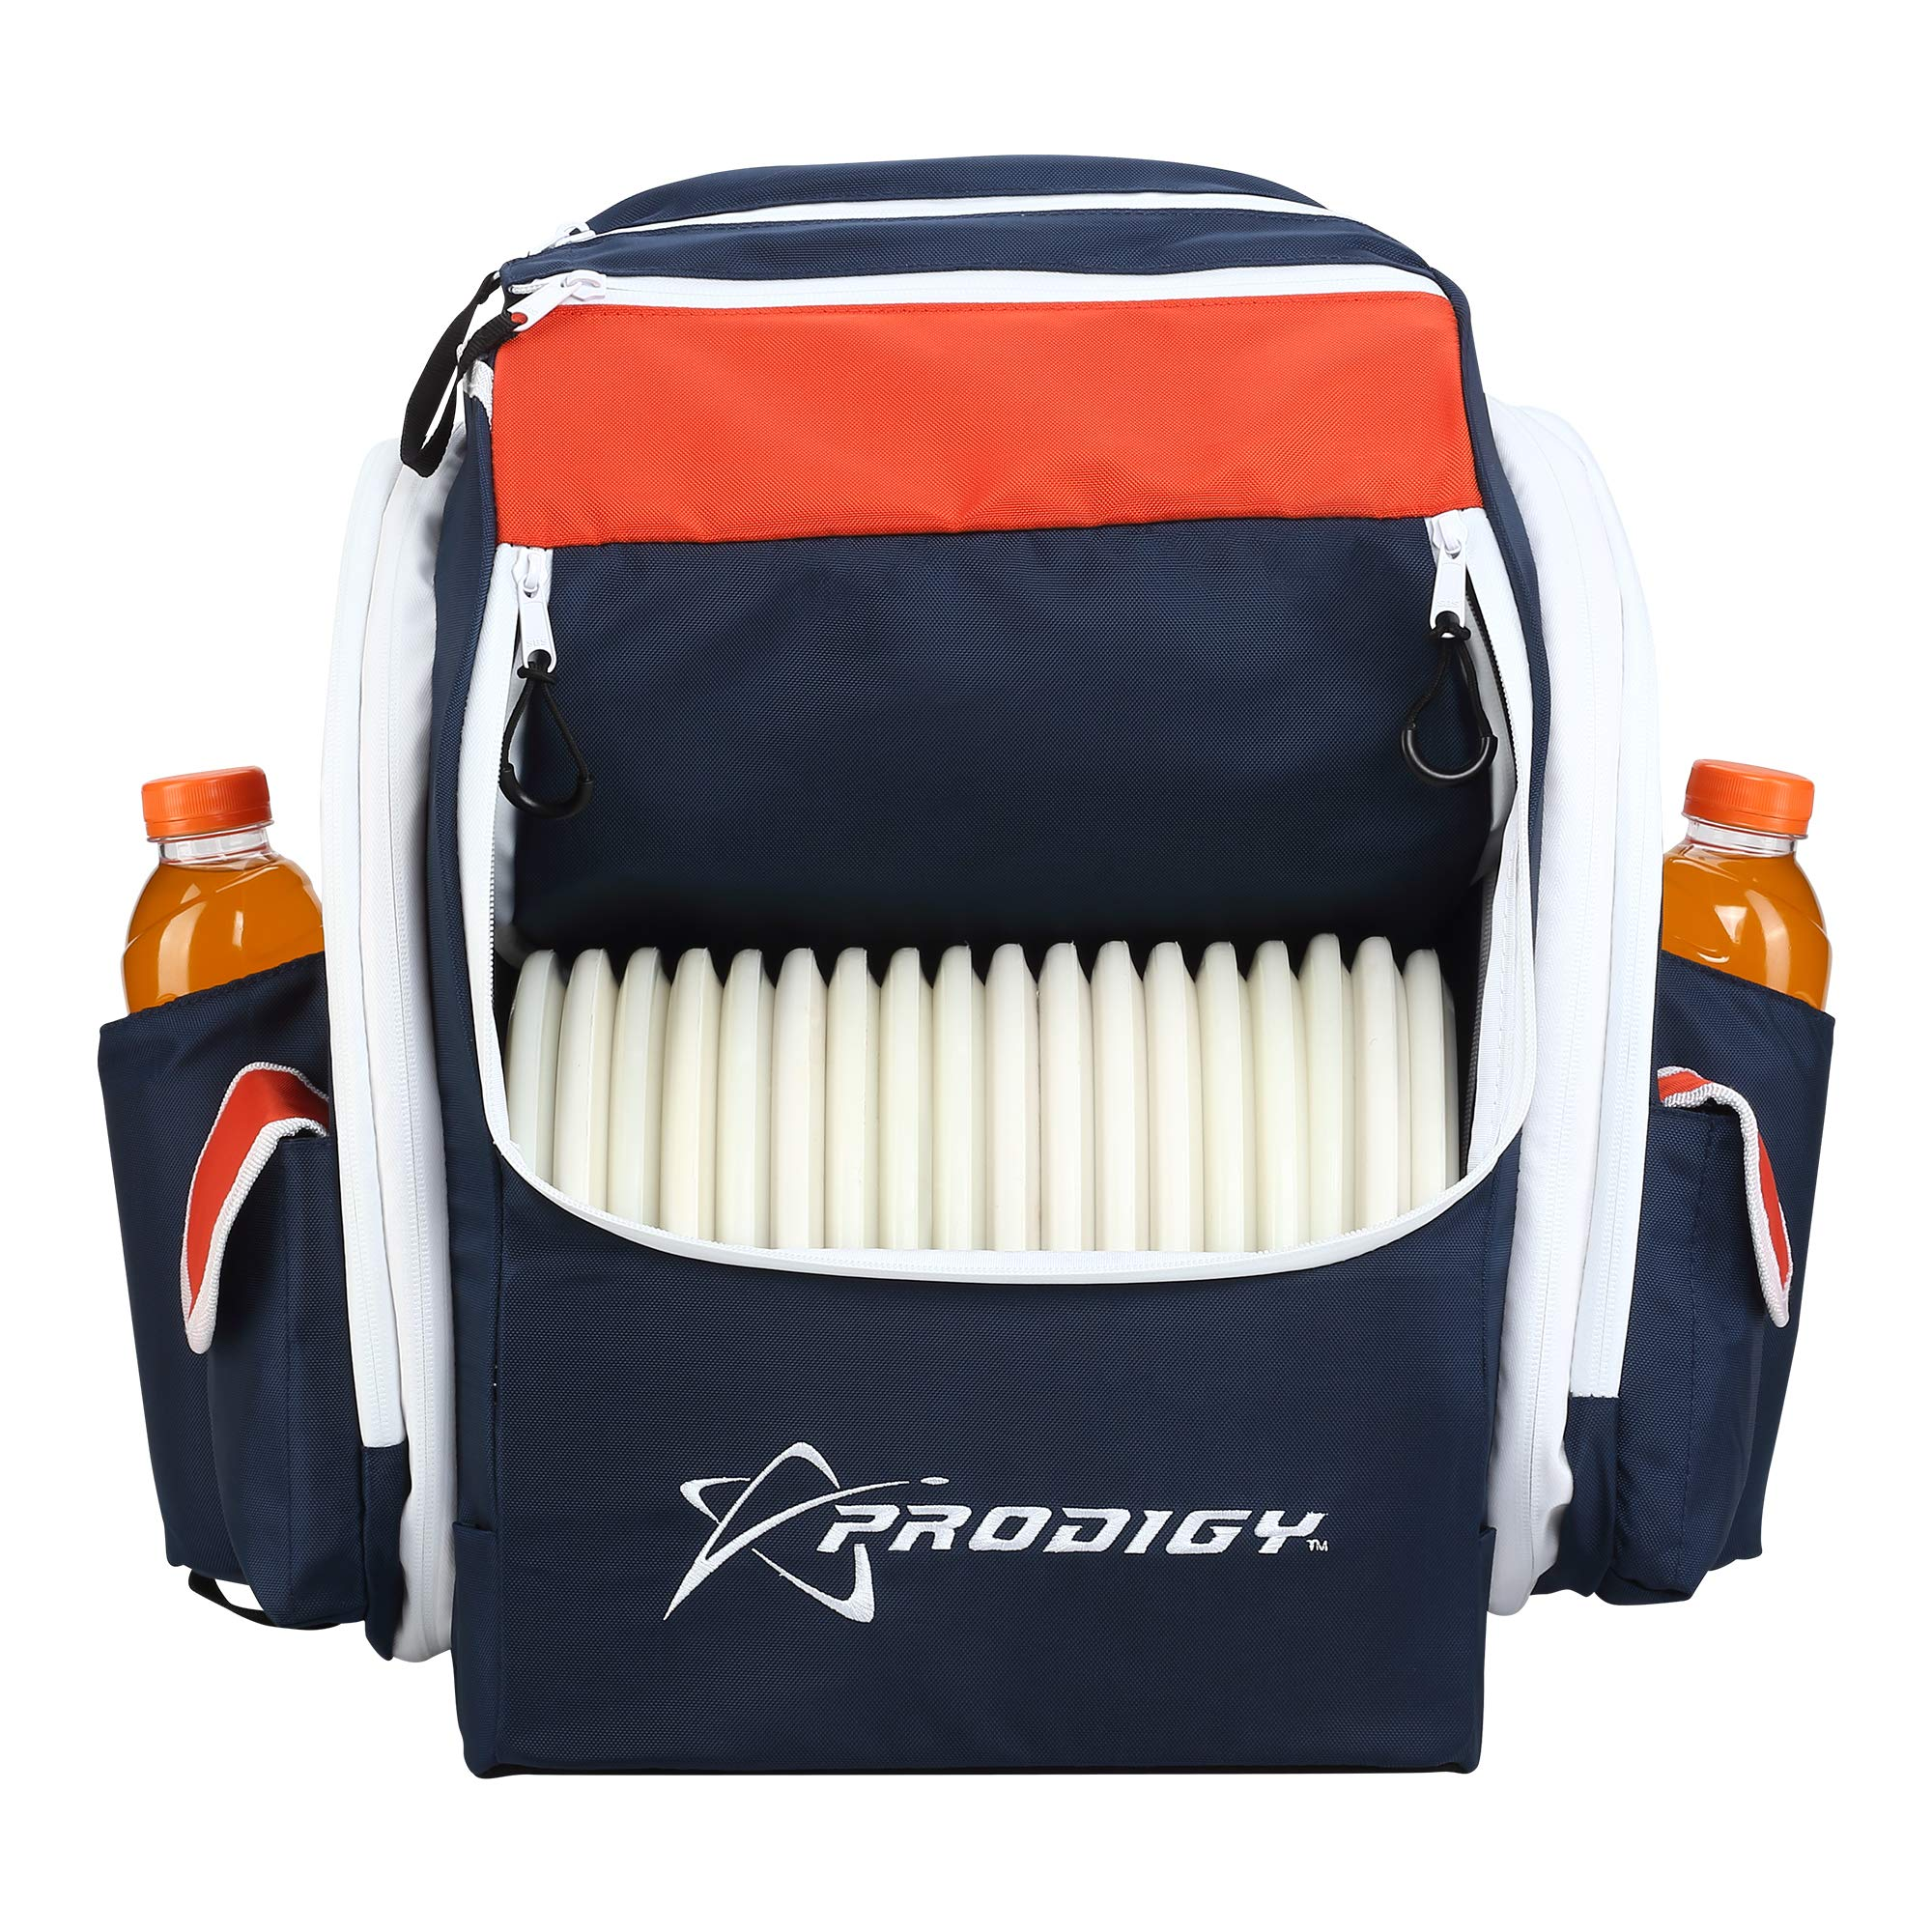 Prodigy Disc BP-1 V2 Disc Golf Backpack Bag - Fits 30+ Discs - Pro Quality (Navy Blue/Red, No Rainfly) by Prodigy Disc